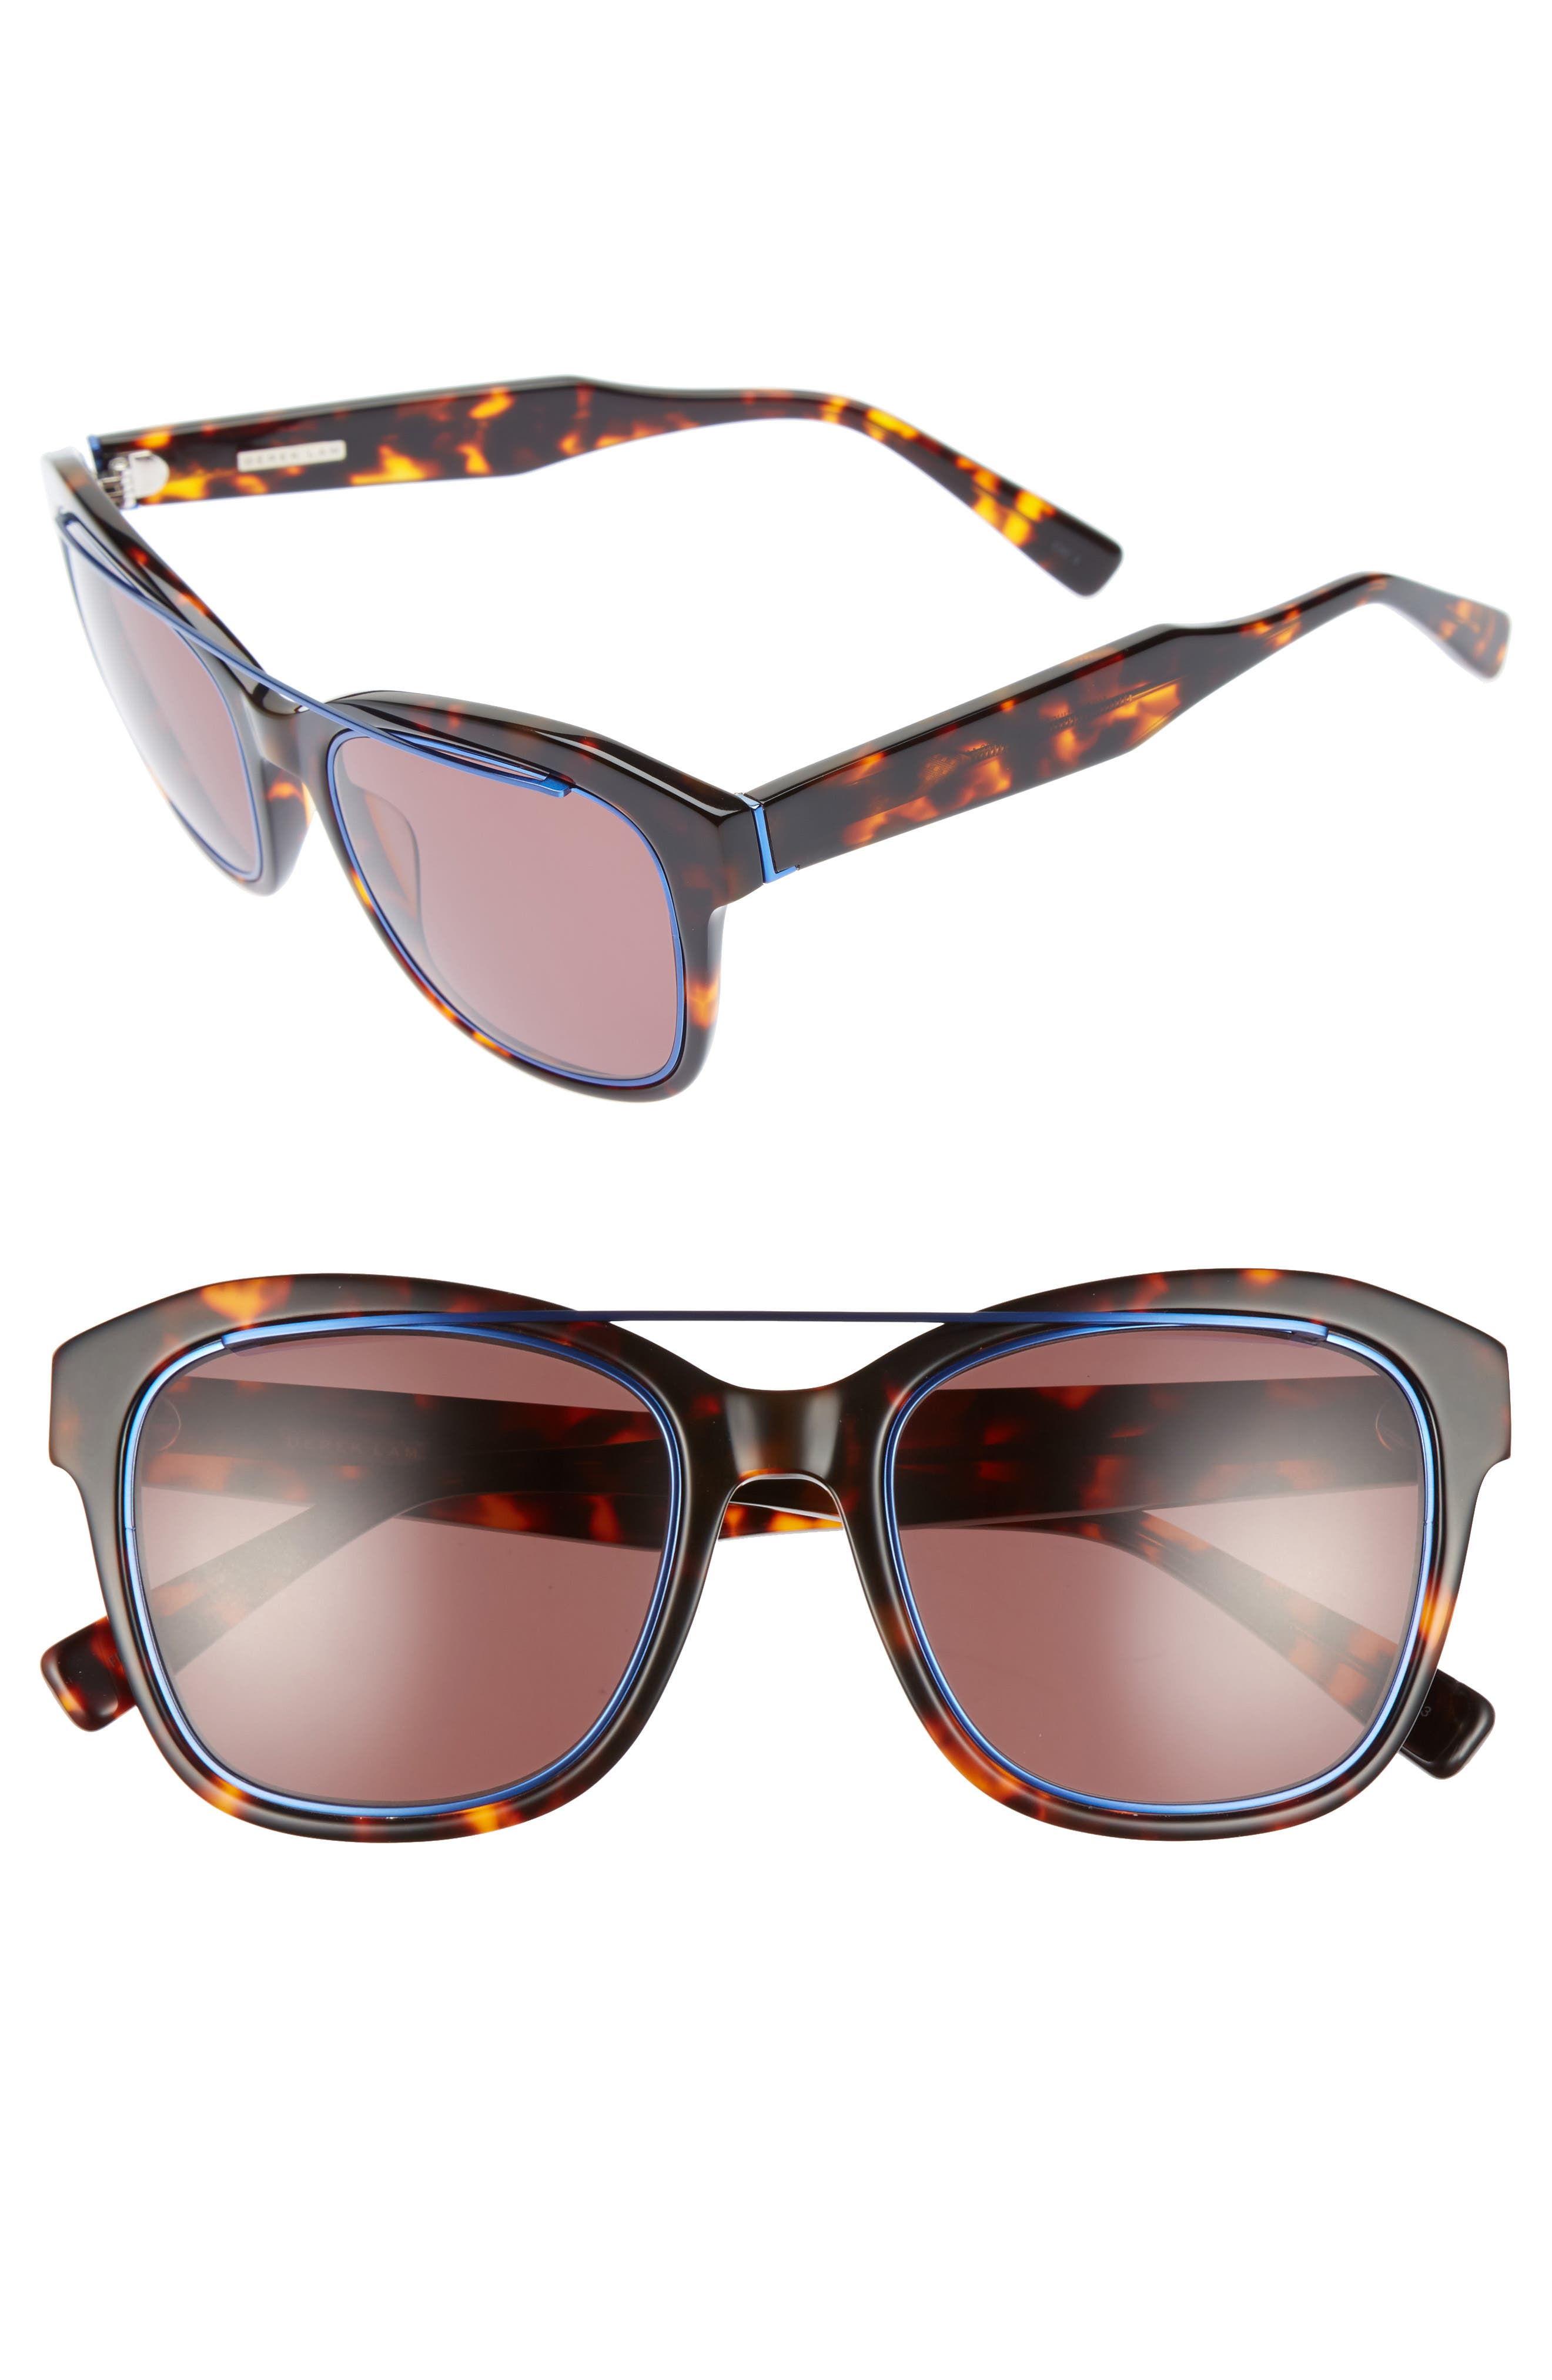 Hudson 52mm Gradient Sunglasses,                         Main,                         color, Havana Tortoise